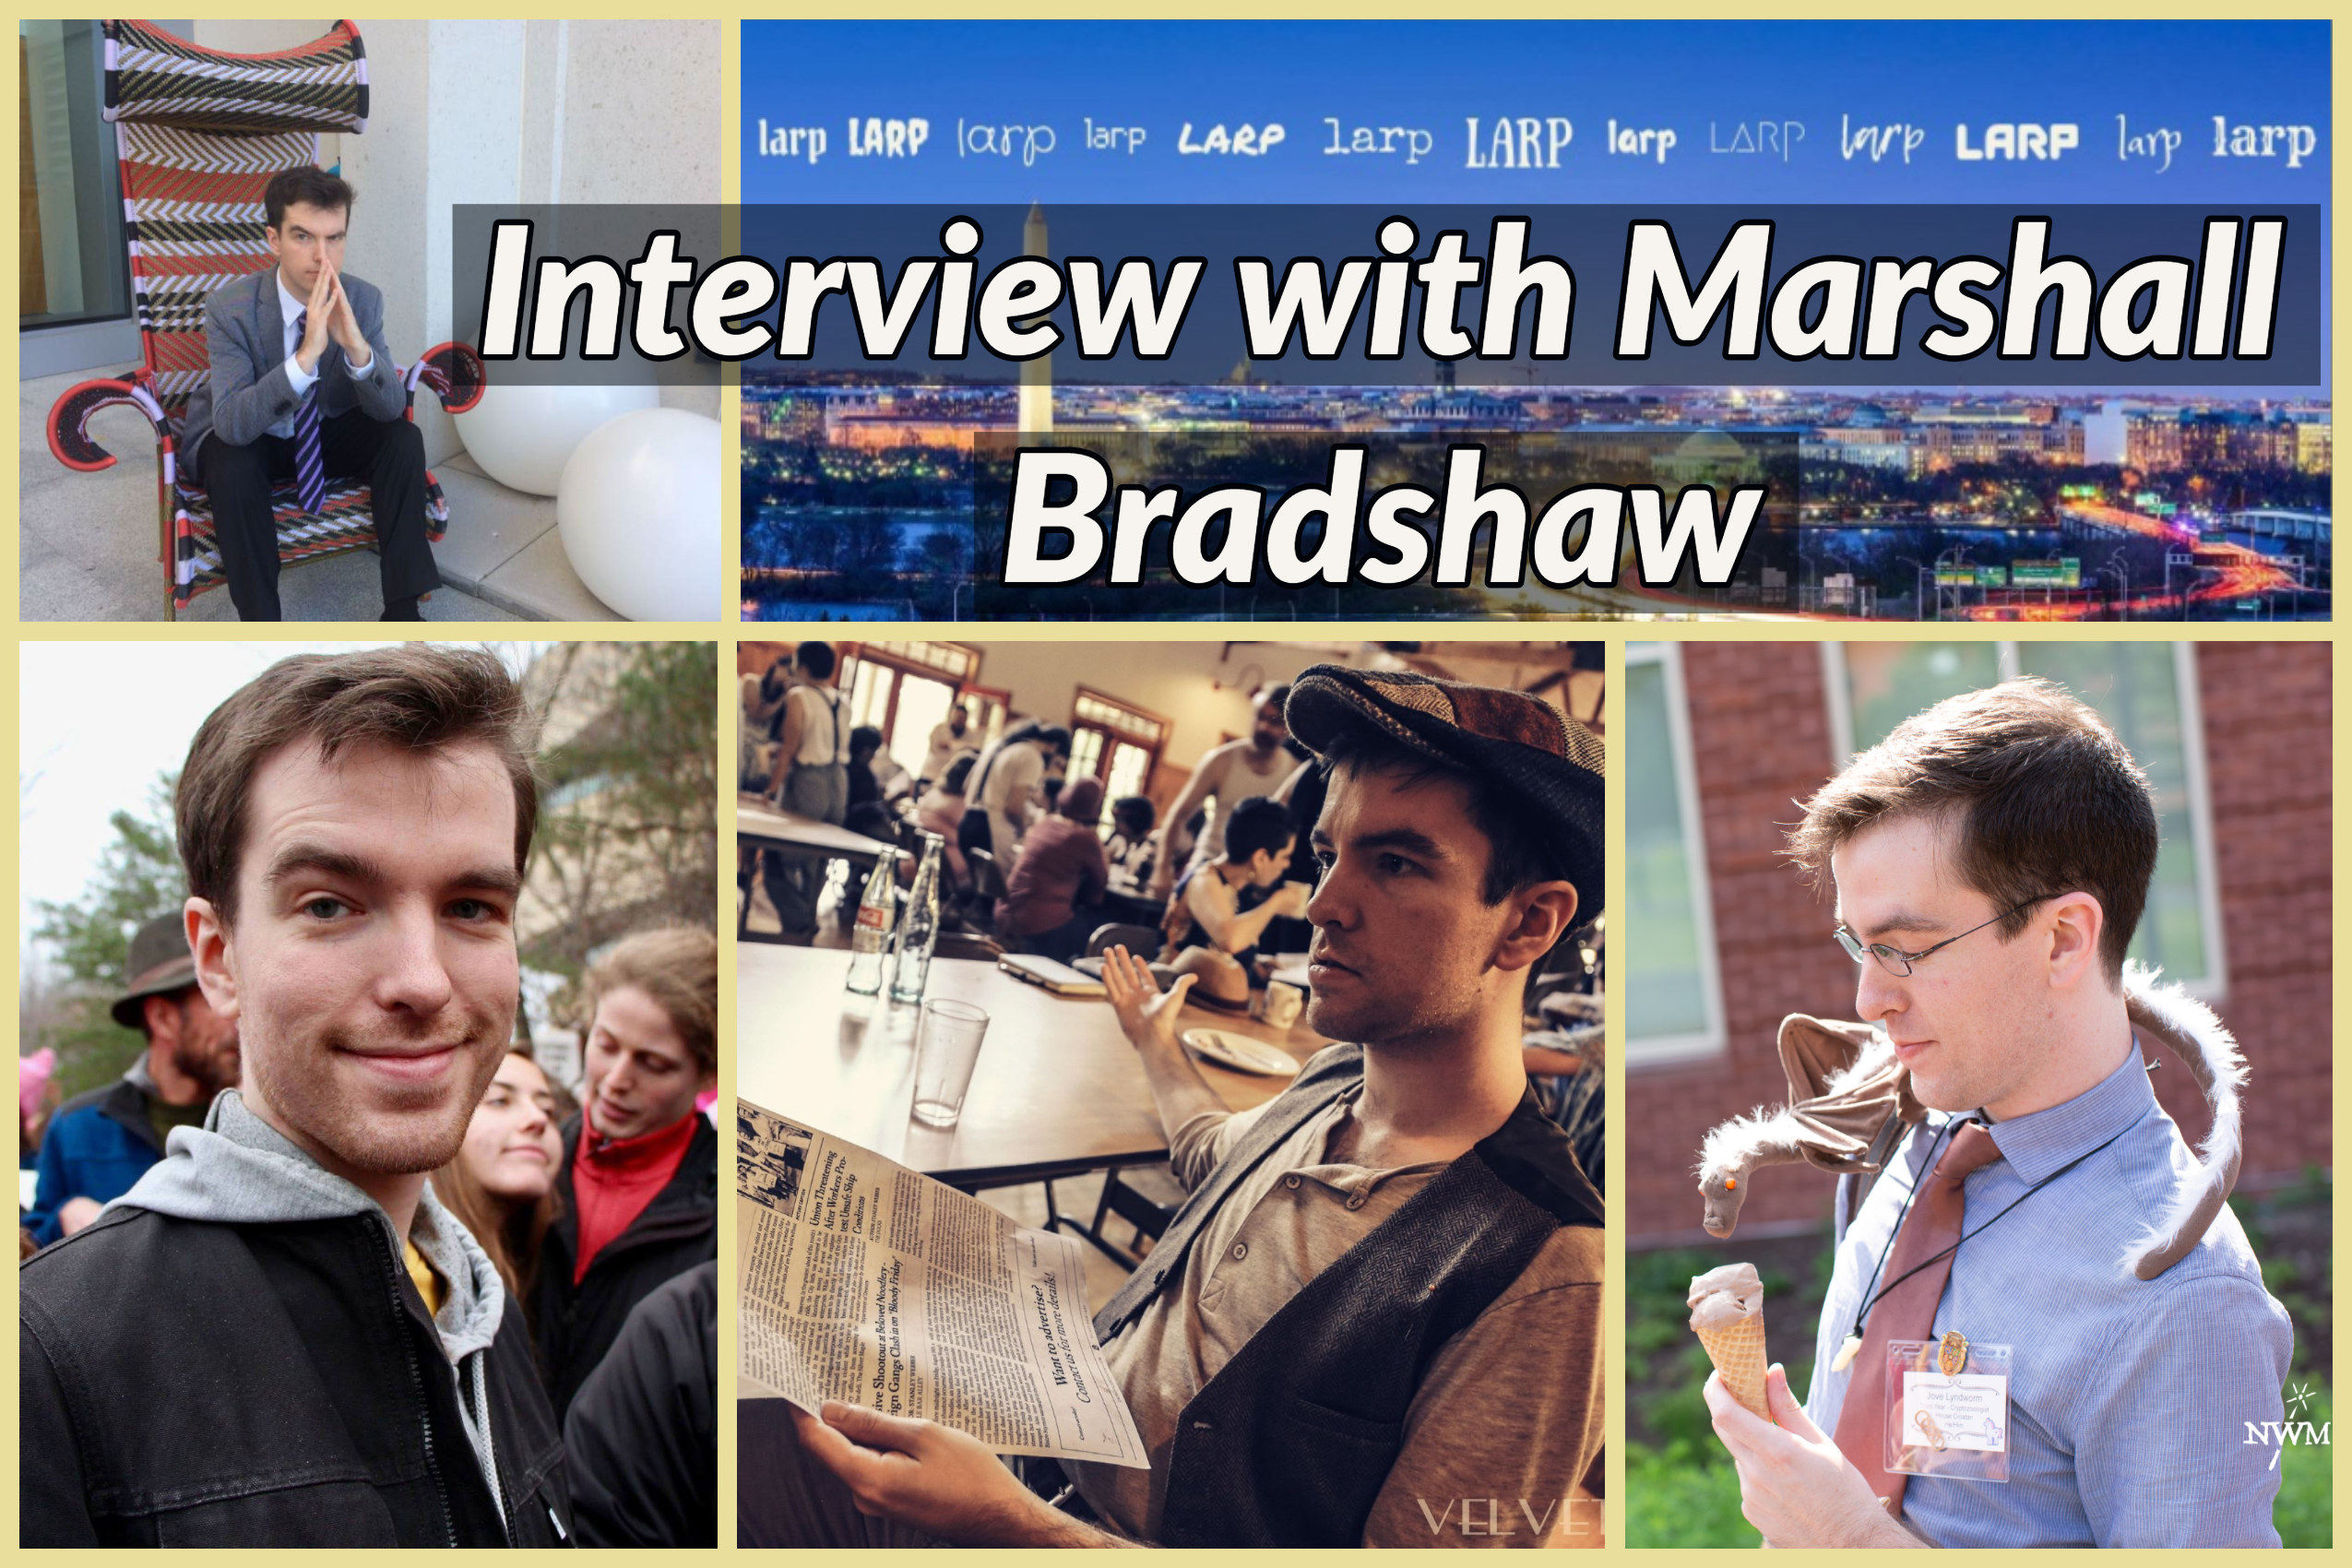 Interview with Marshall Bradshaw